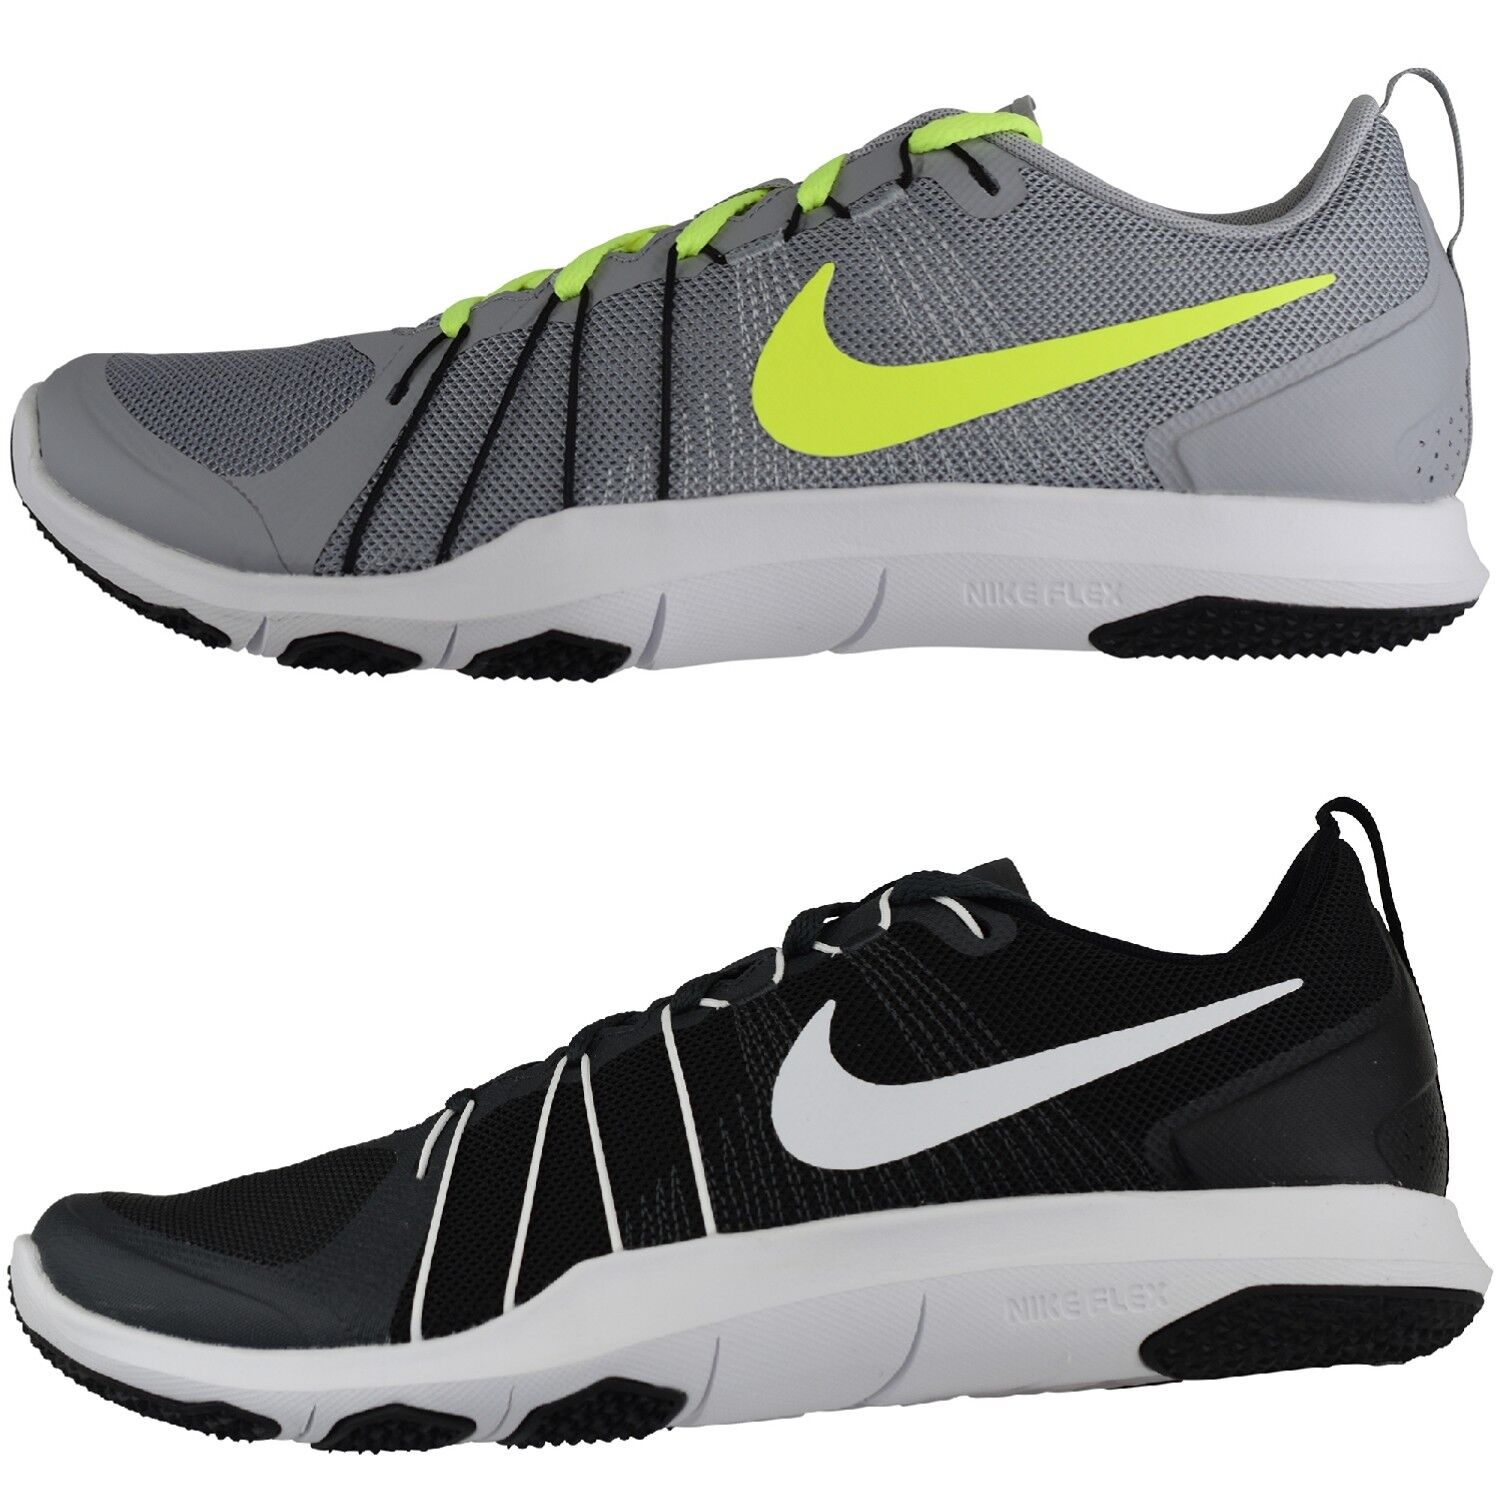 NIKE FLEX TRAIN AVER Running Shoe  Trainers Textile